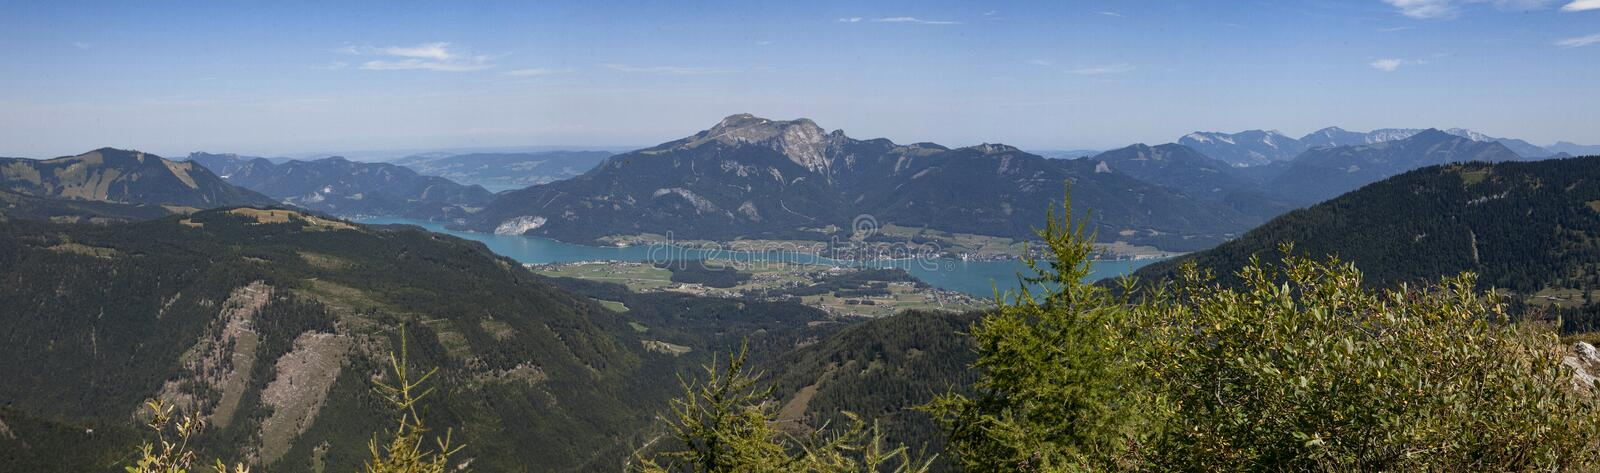 Wolfgangsee. View to Wolfgangsee and Schafberg mountain from Postalm area royalty free stock images